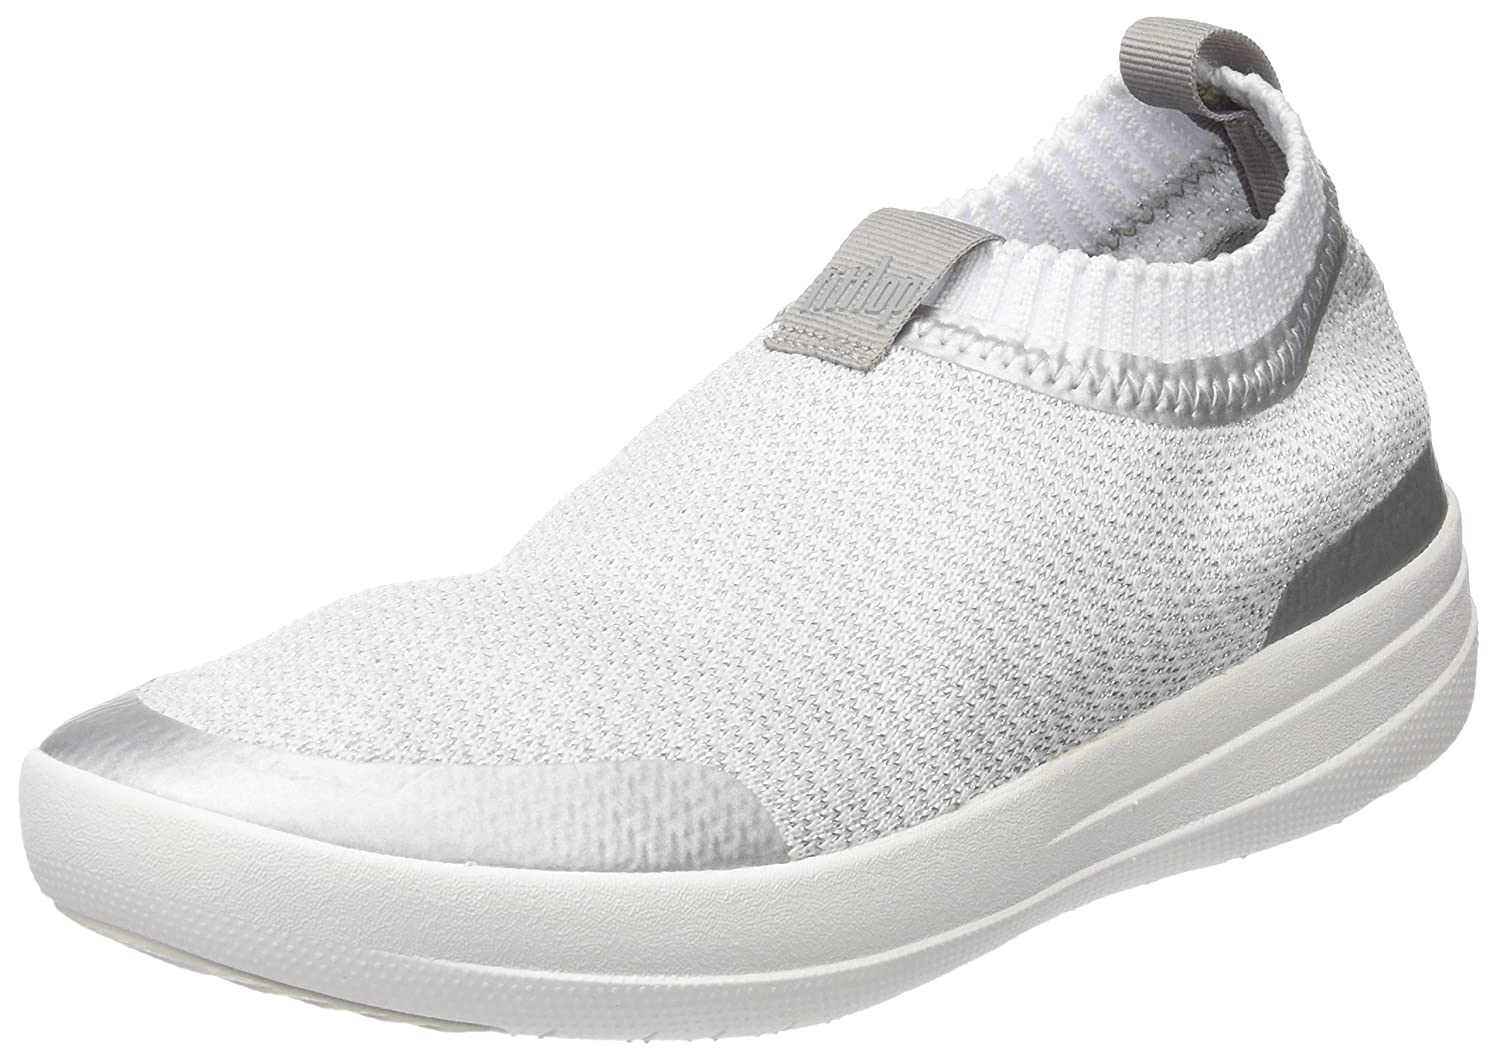 Fitflop Uberknit Slip-on Sneakers-Metallic, Zapatillas Altas para Mujer 38 EU|Multicolour (Metallic Silver/Urban White)